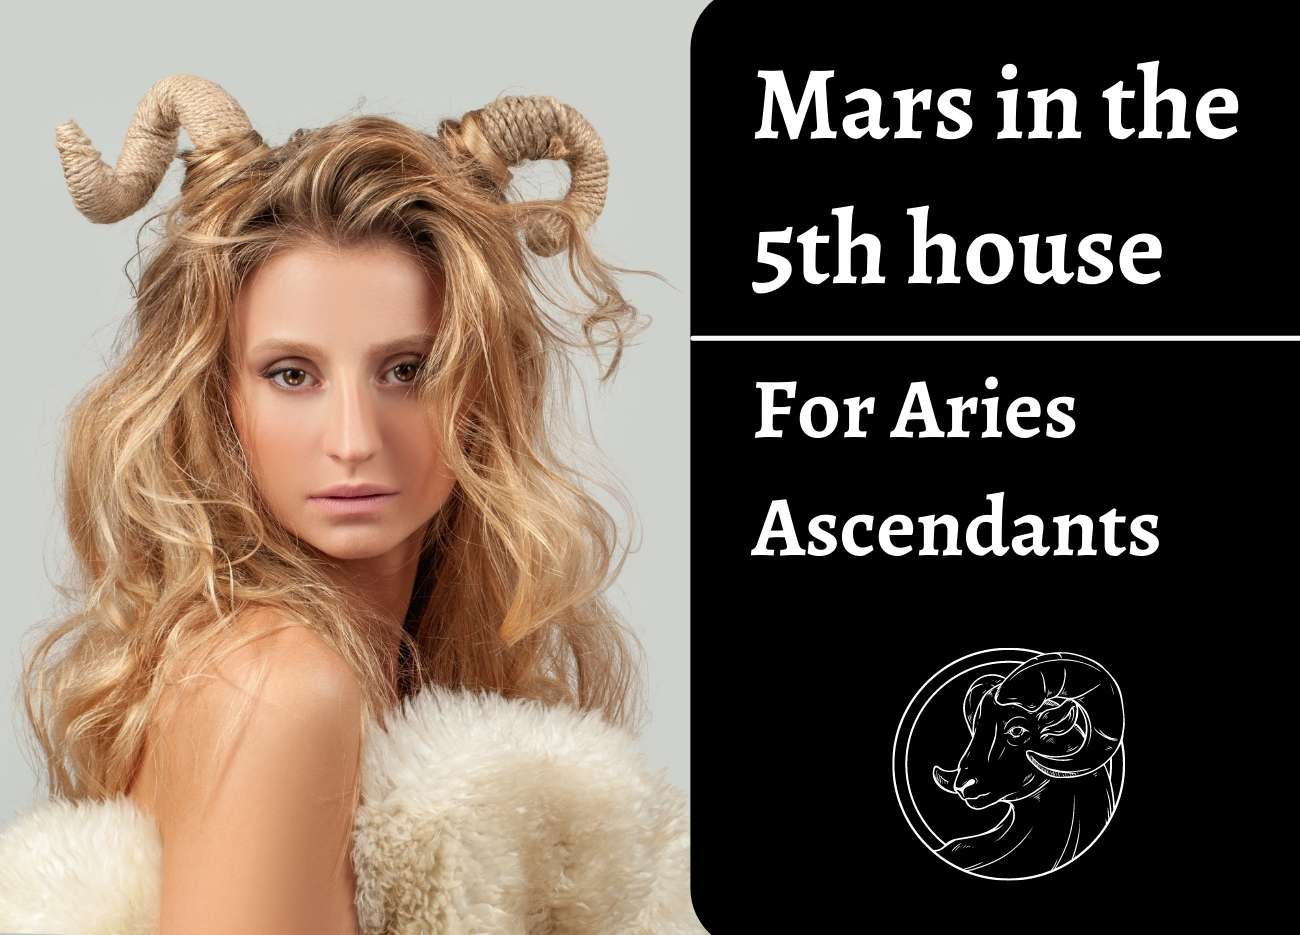 Mars in the 5th house for Aries